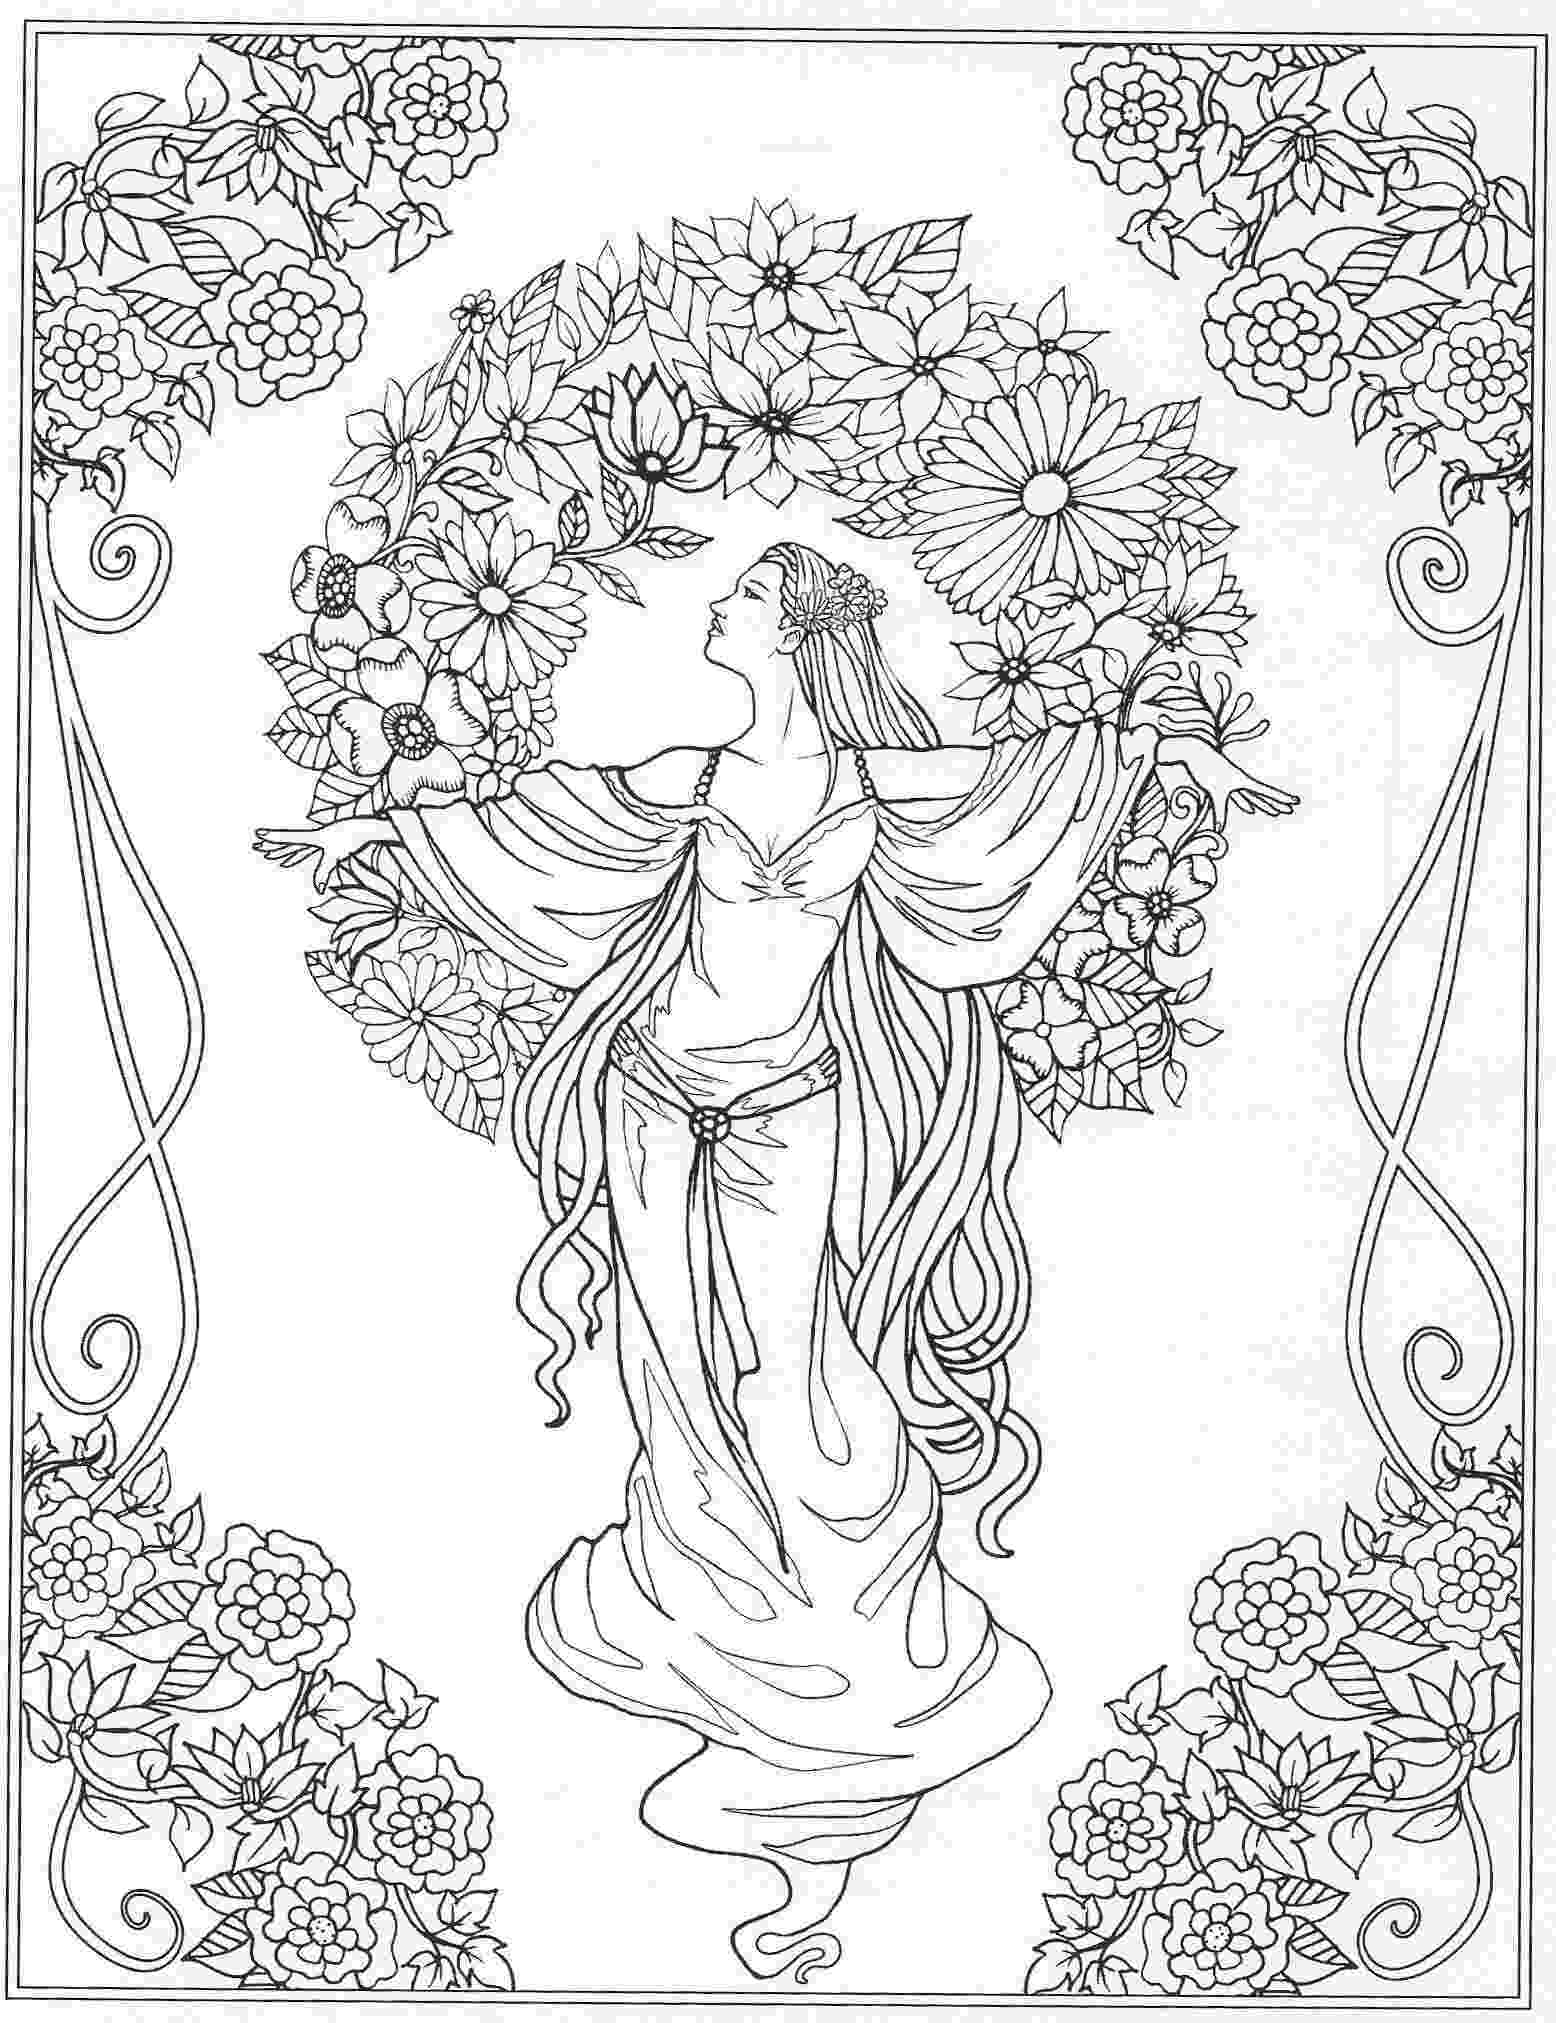 coloring pages of beautiful flowers beautiful lady amongst flowers coloring page beautiful pages coloring beautiful of flowers